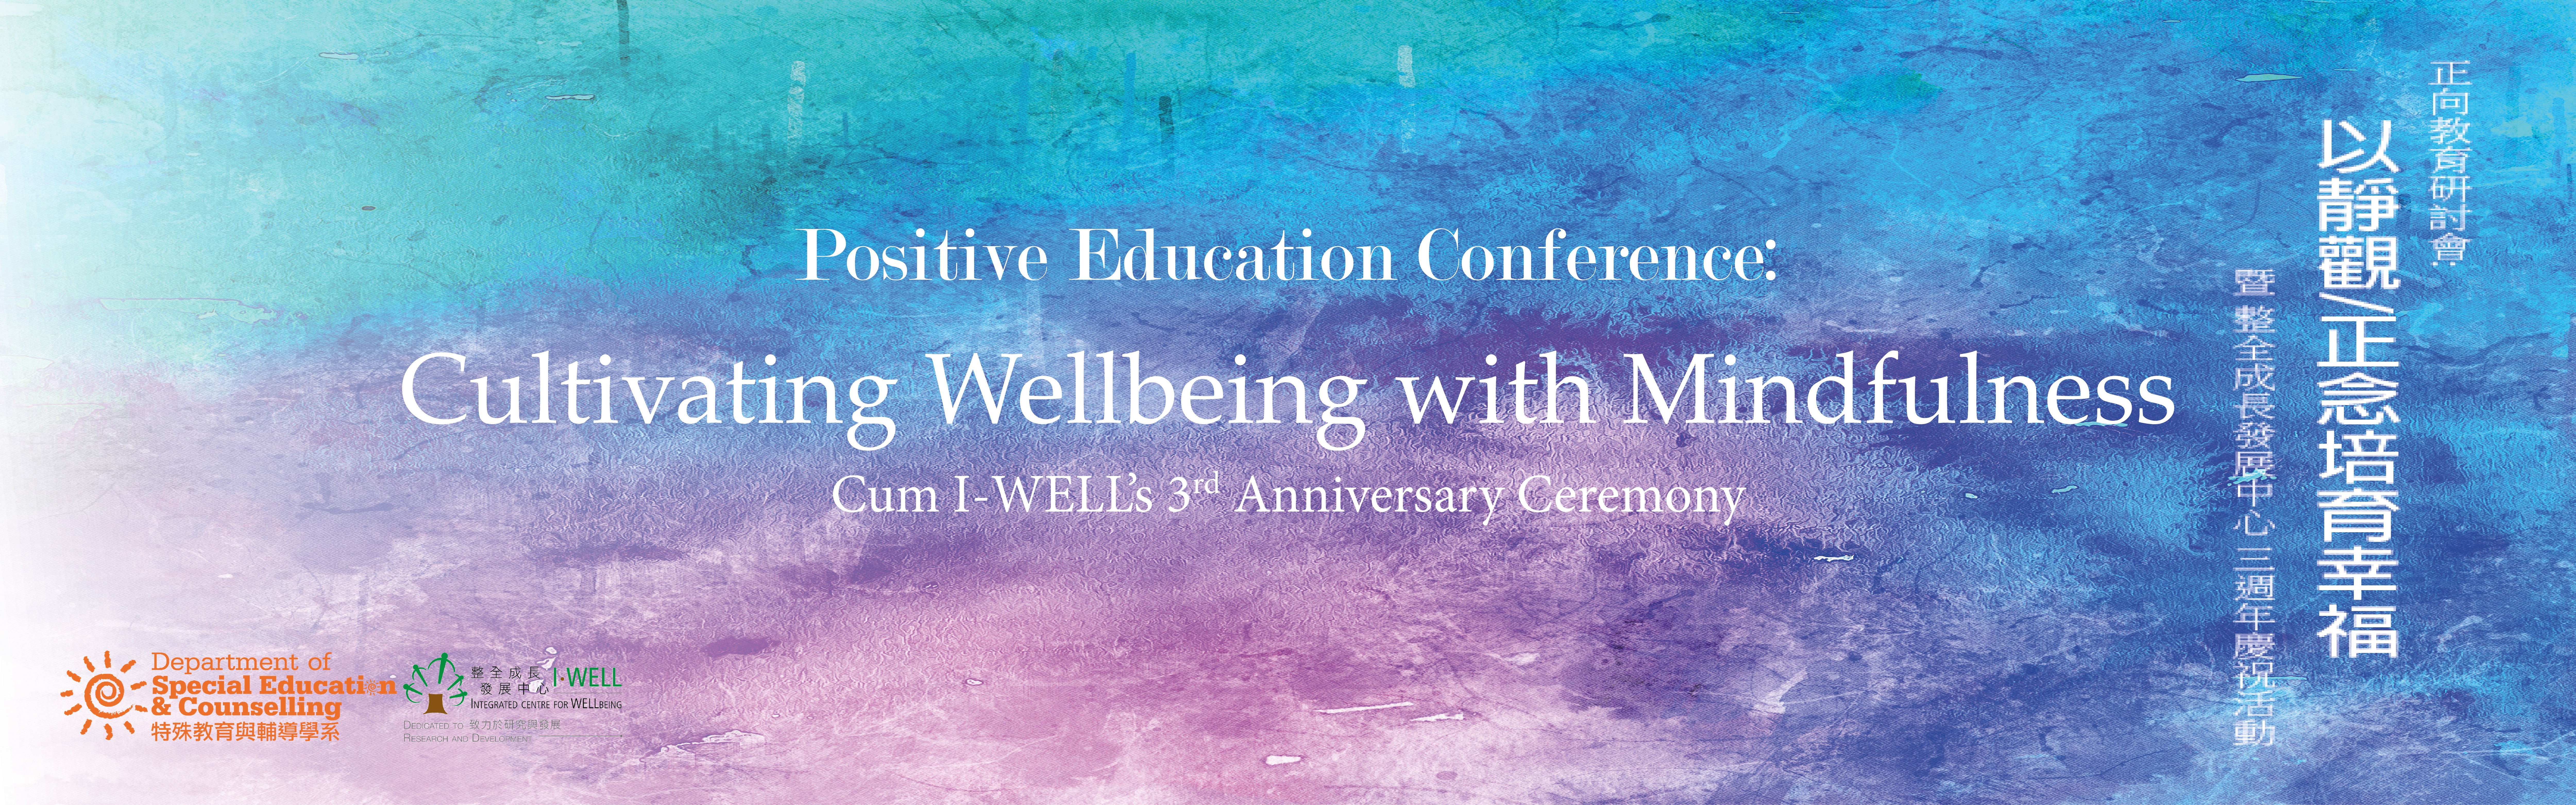 Positive Education Conference: Cultivating Wellbeing with Mindfulness Cum I-WELL's 3rd Anniversary Ceremony